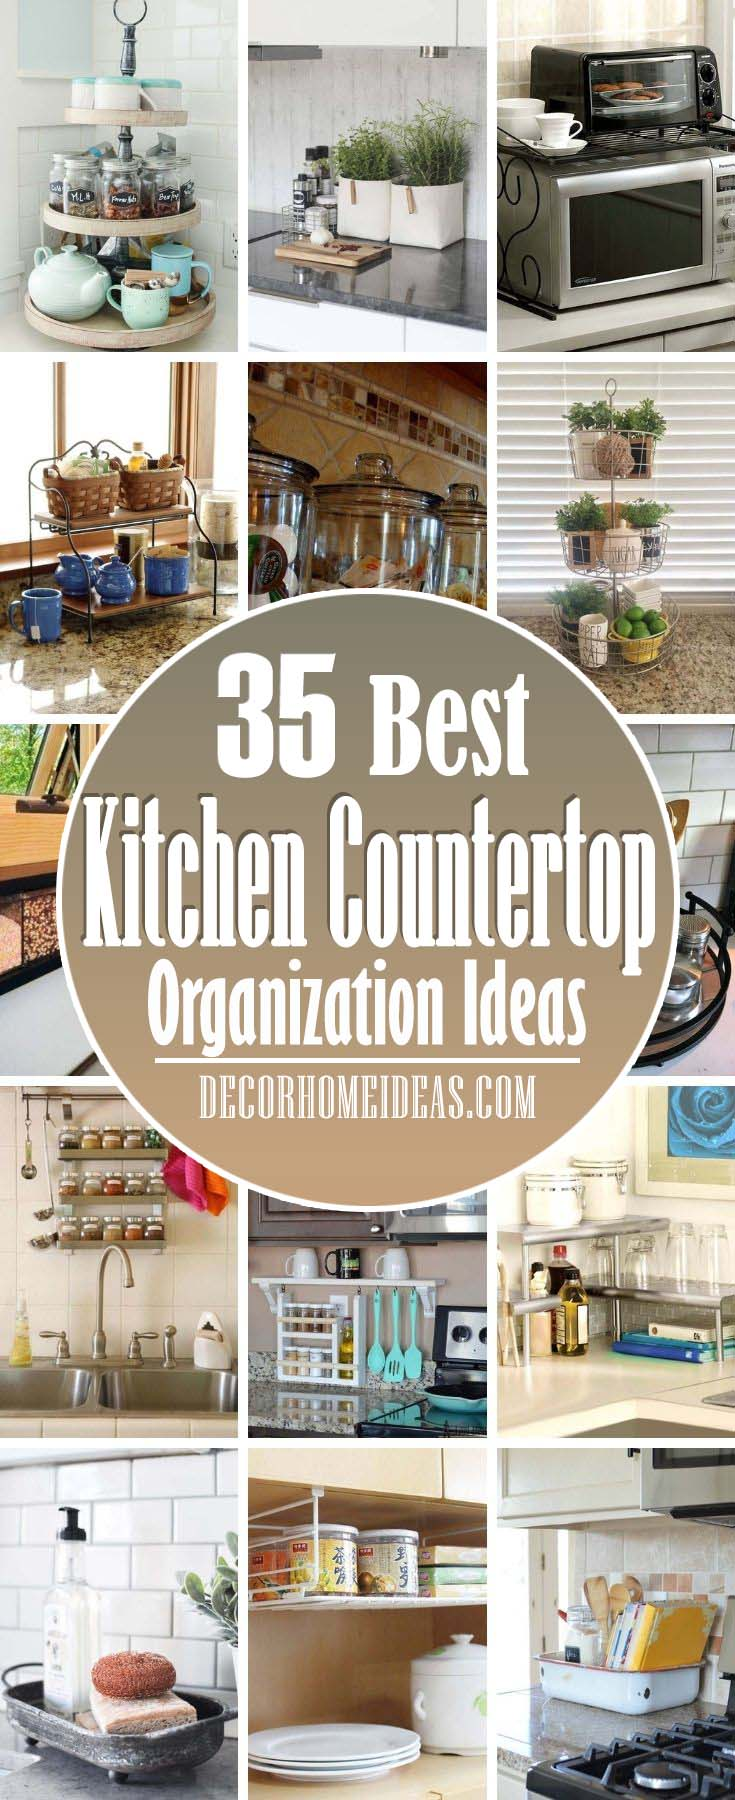 Best Kitchen Countertop Organization Ideas. Here are some creative ways to think about and store your kitchen items so that your counters stay as clear as possible. #decorhomeideas